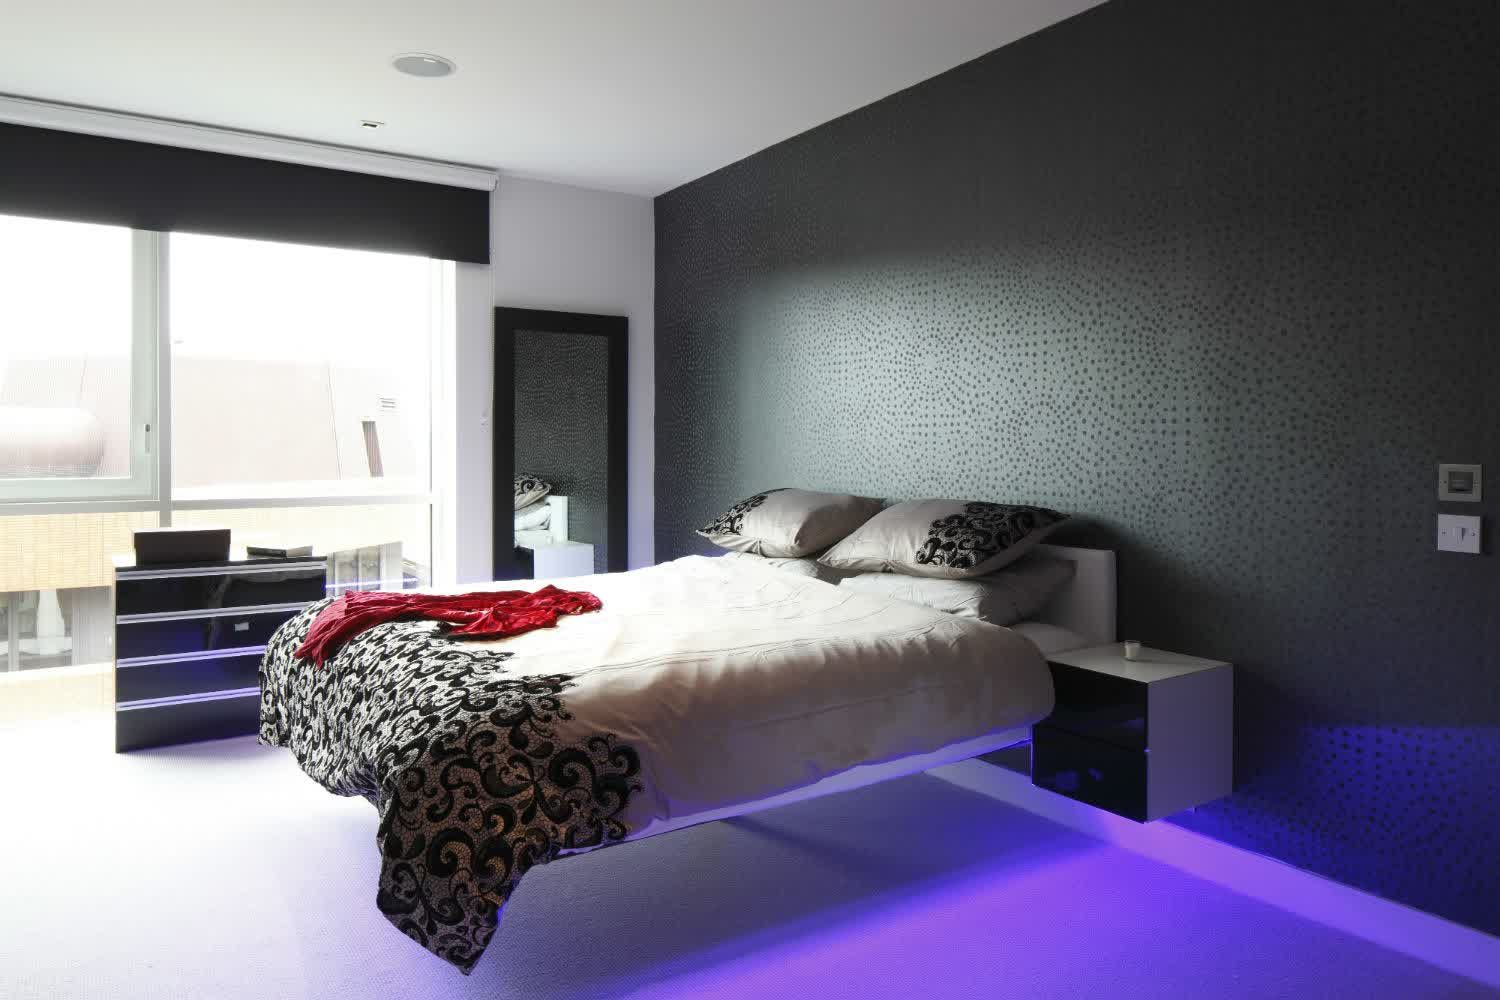 Bedroom designs for bachelor -  Bachelor Bedroom Sets Bachelor Bedroom Sets